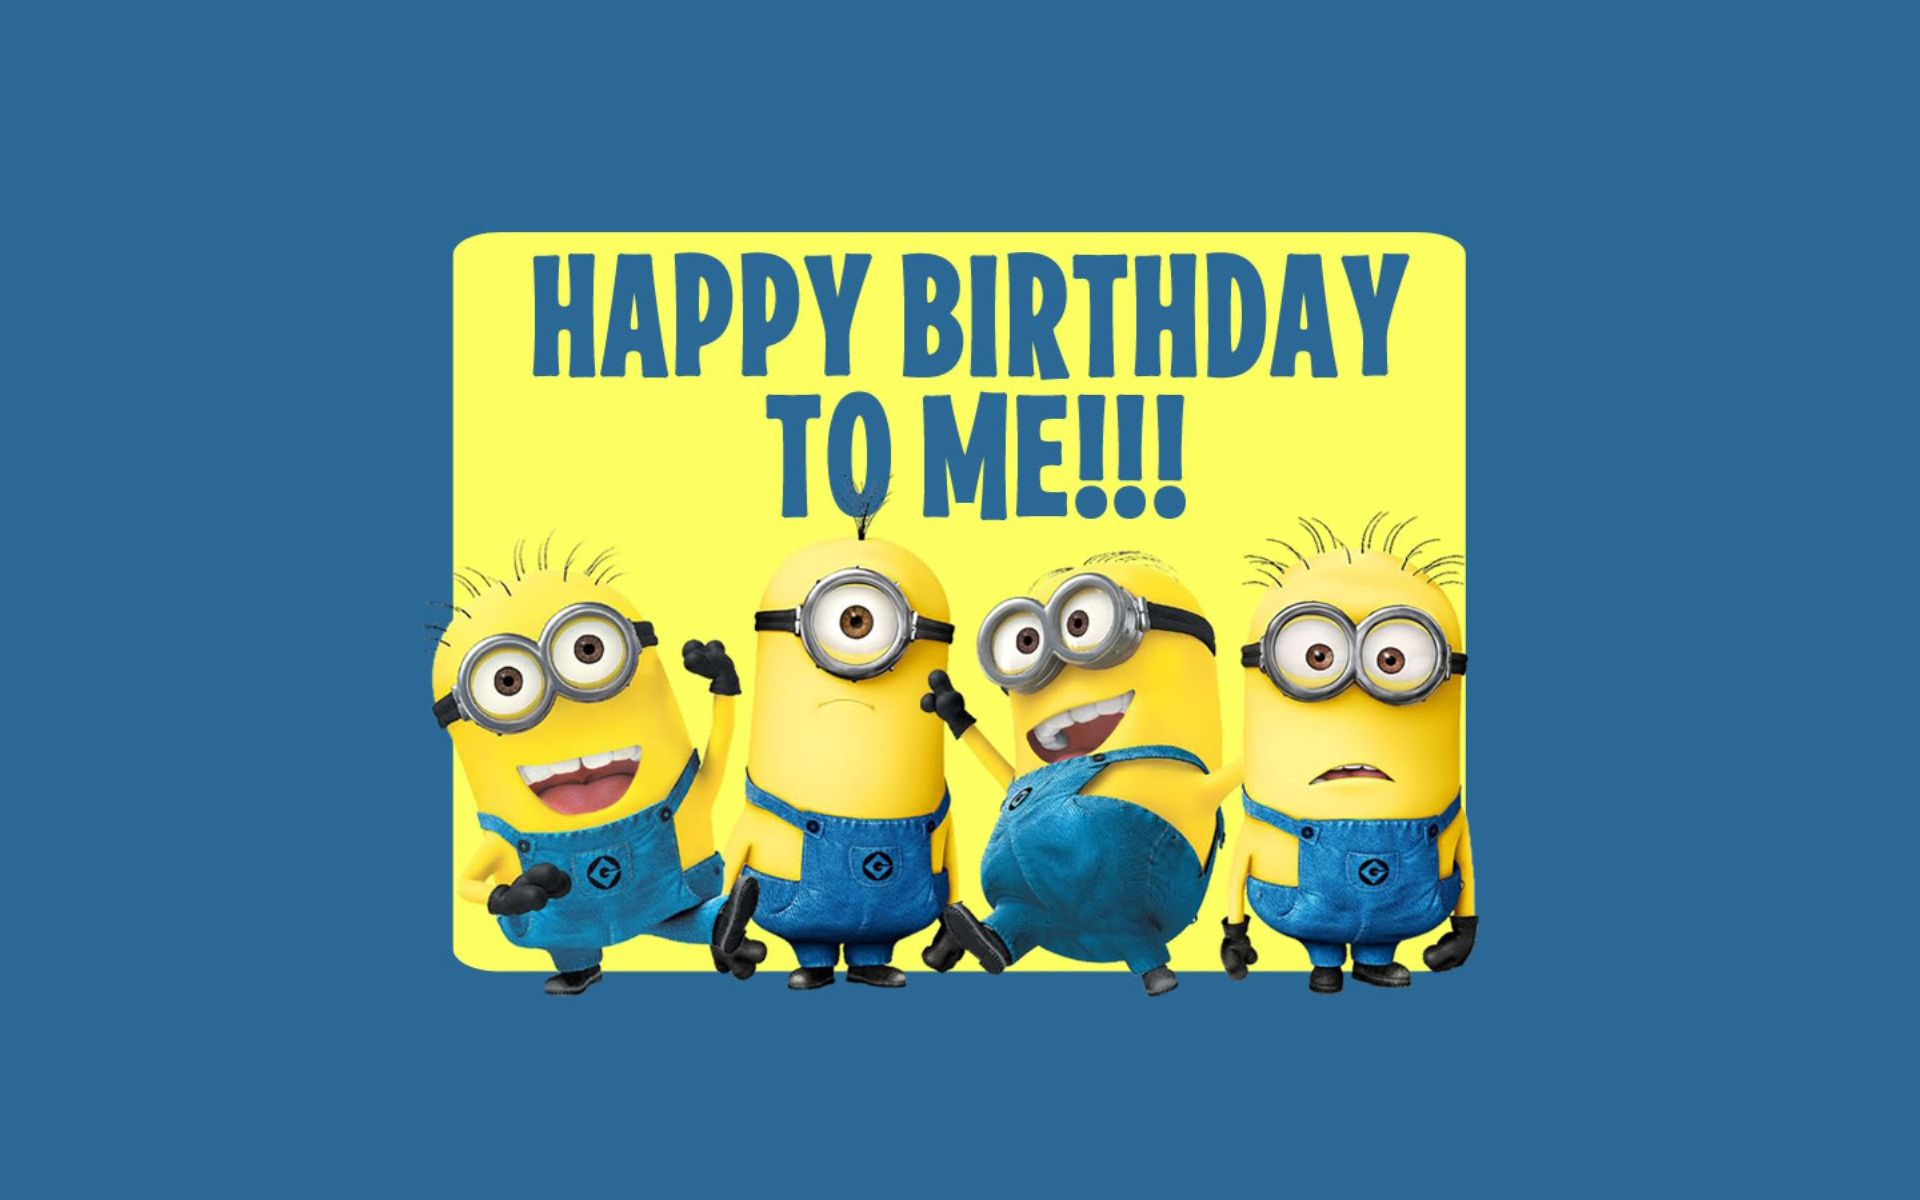 funny minions wallpapers hd | t shirts to make | pinterest | happy